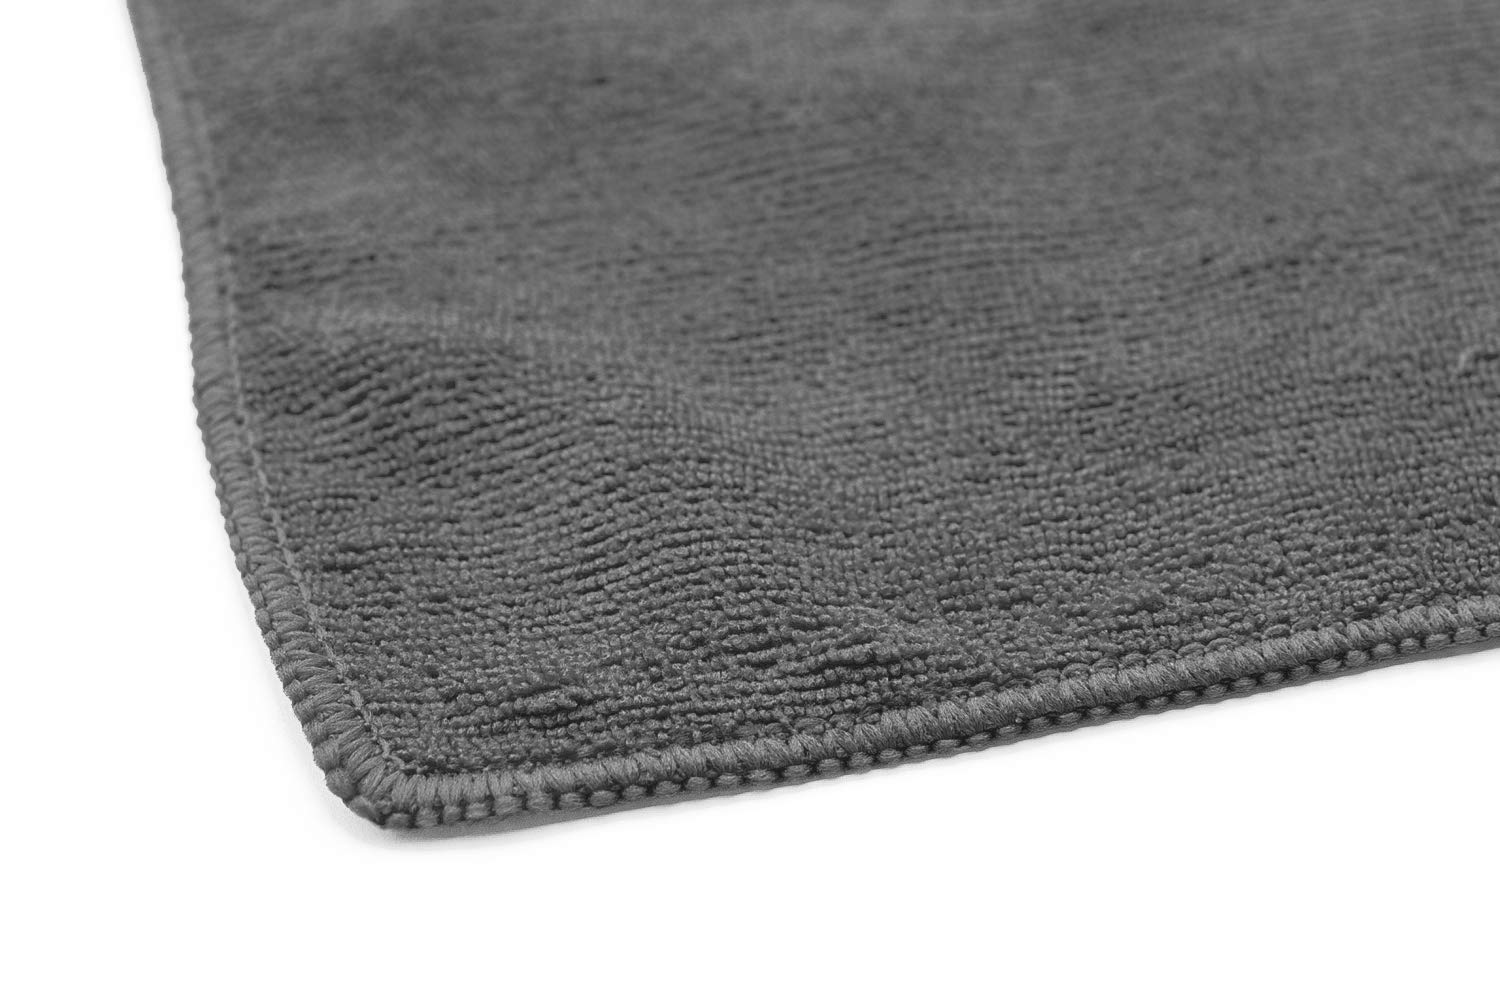 (12-Pack) 16 in. x 16 in. Commercial Grade All-Purpose Microfiber HIGHLY ABSORBENT, LINT-FREE, STREAK-FREE Cleaning Towels - THE RAG COMPANY (Grey) by THE RAG COMPANY (Image #5)